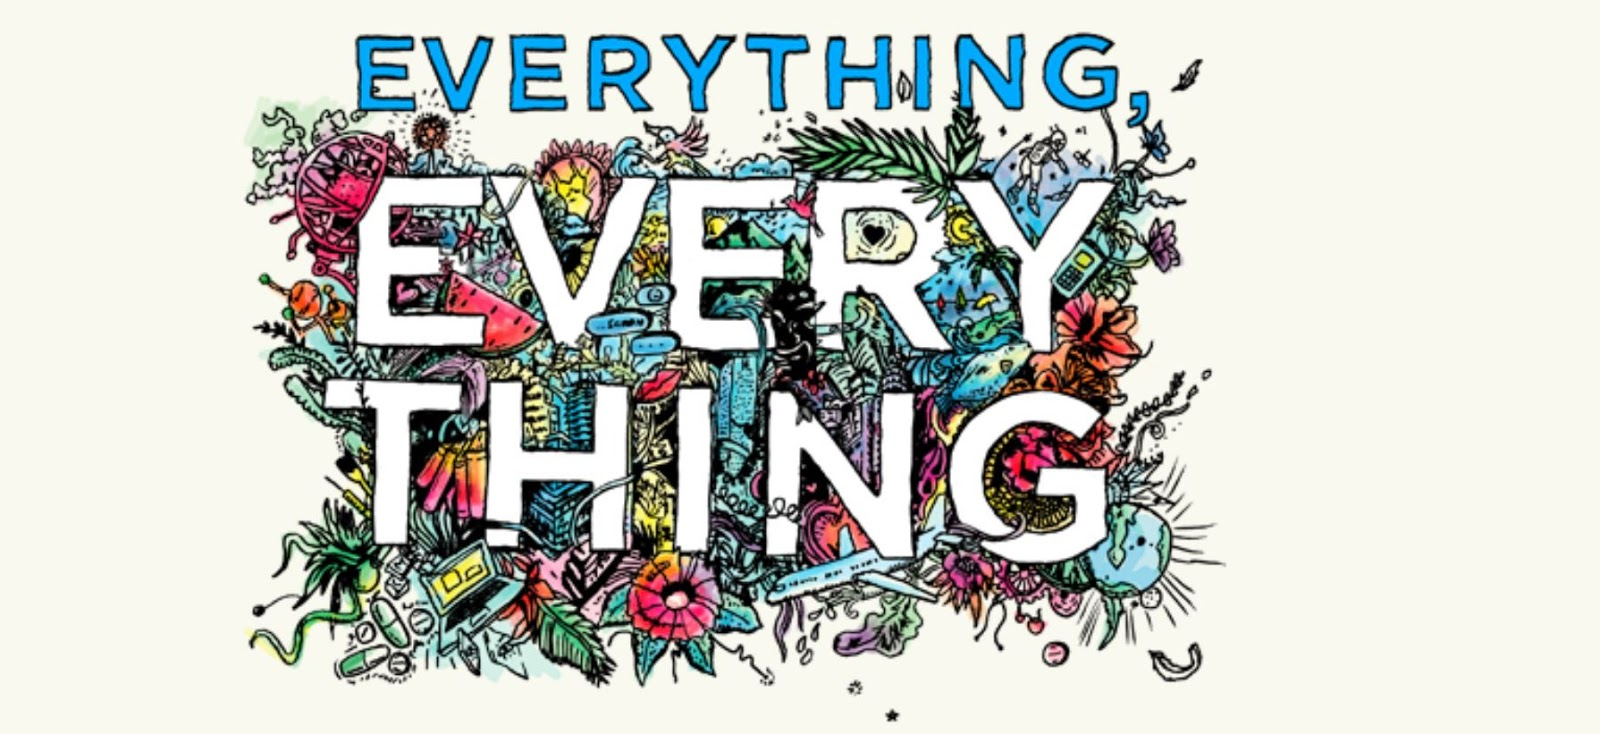 look main poster released for everything everything reel advice